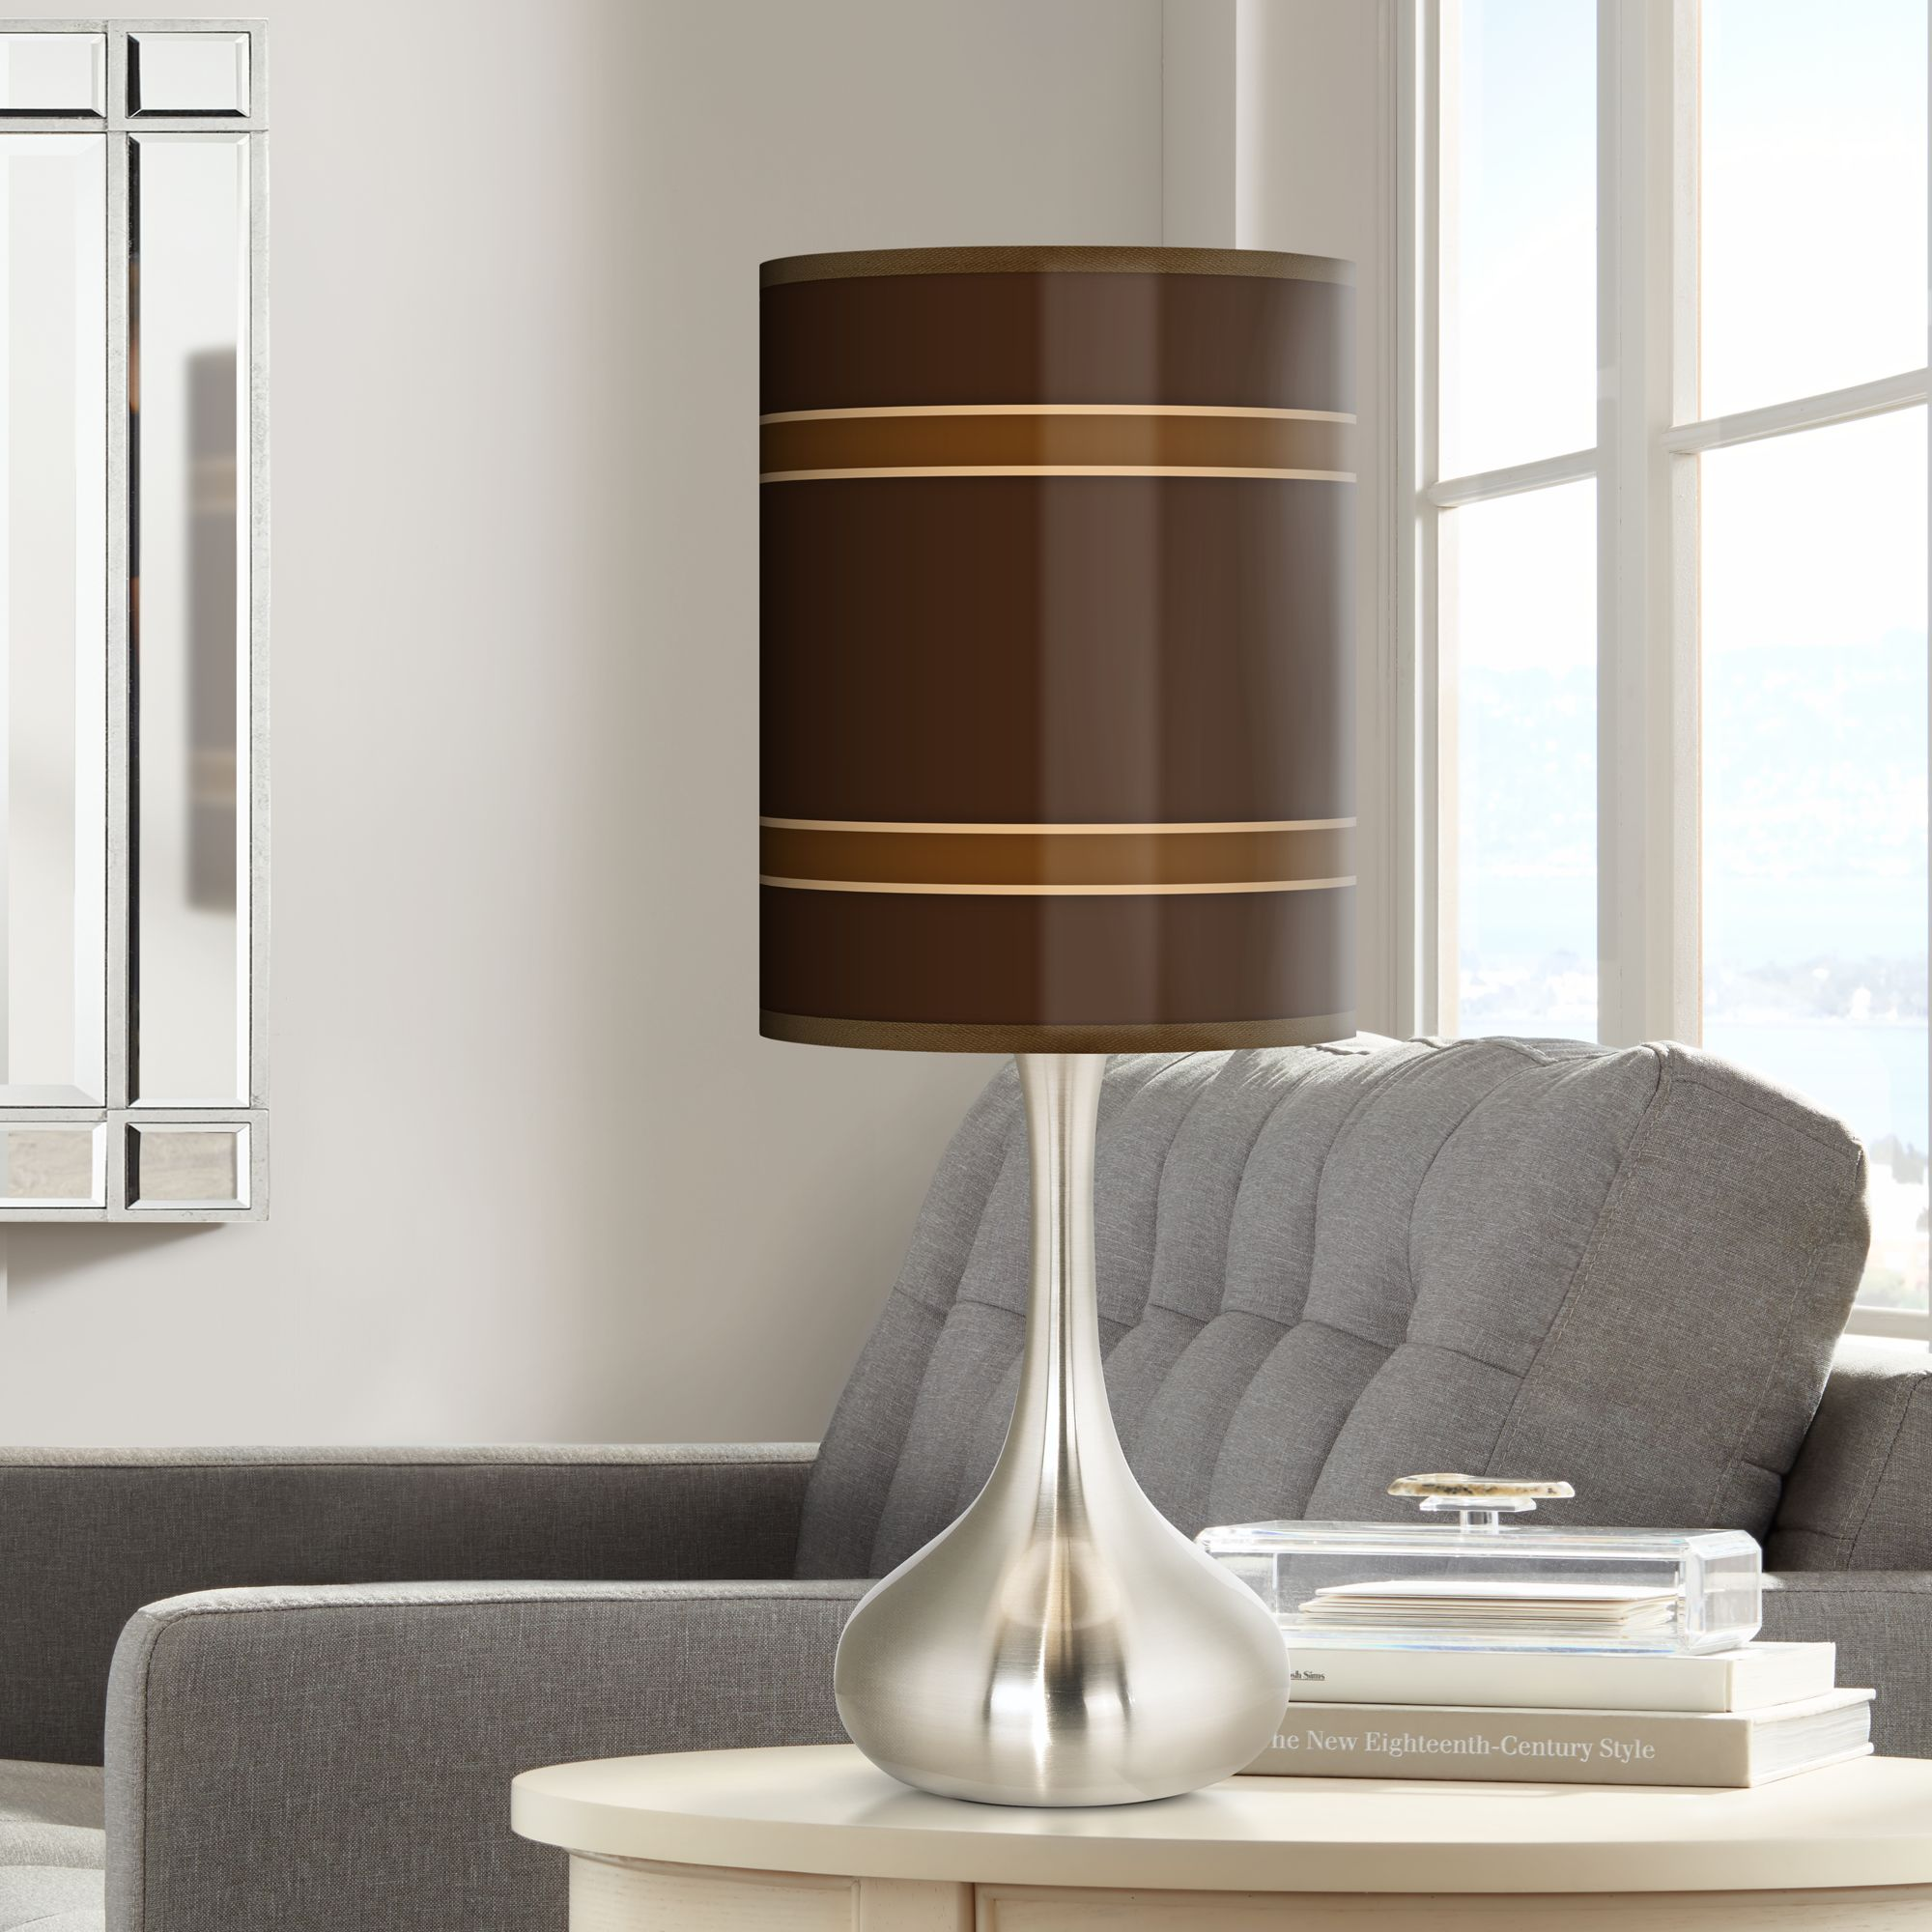 Giclee Glow Saratoga Stripe Giclee Droplet Table Lamp